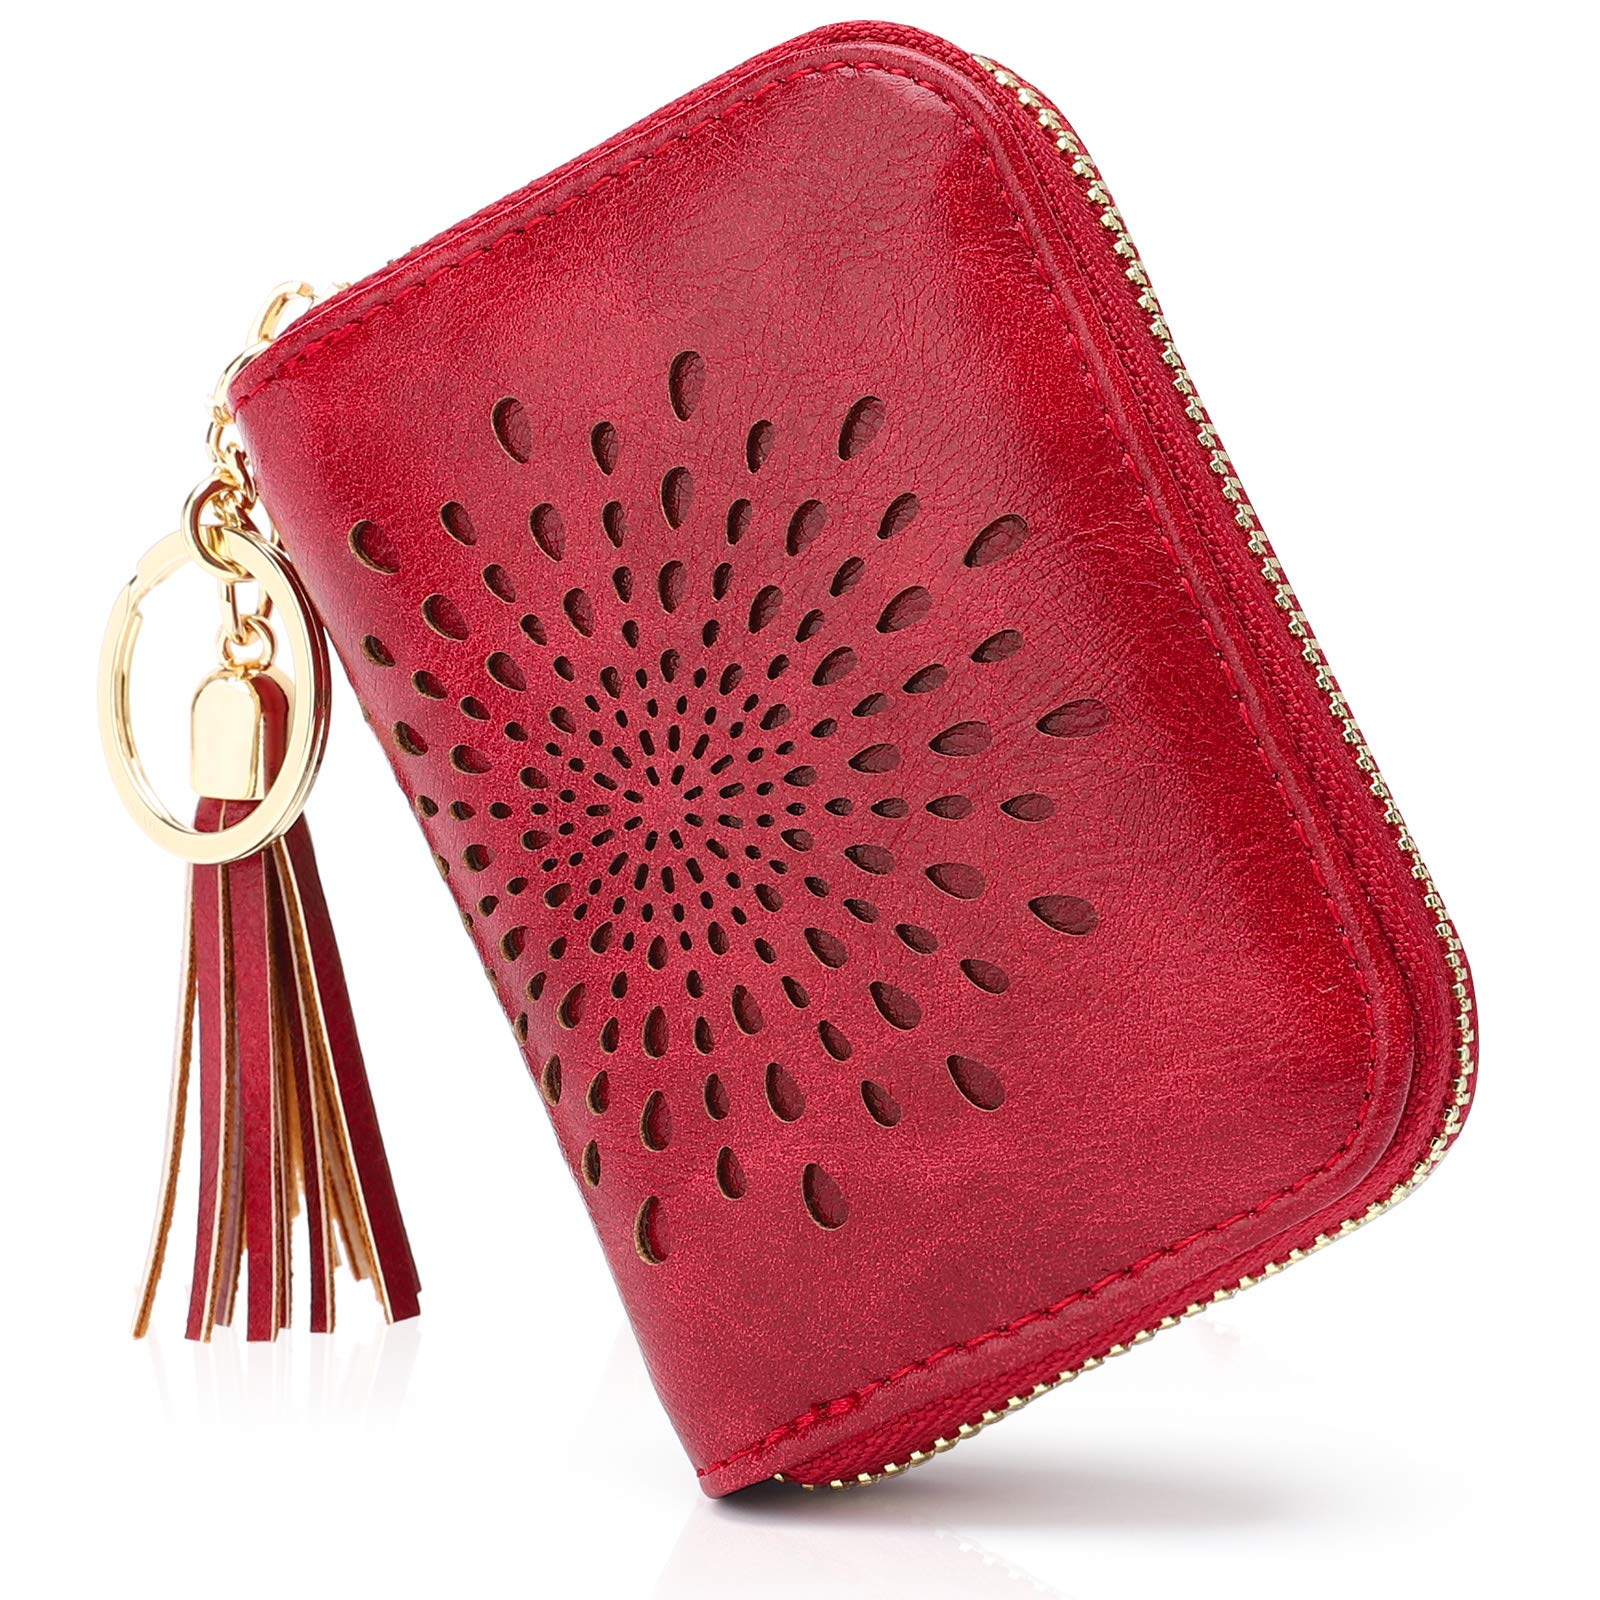 APHISON RFID Credit Card Holder Zipper Card Case Small Wallets for Women Leather Sunflower style Ladies Girls / Gift Box 1927